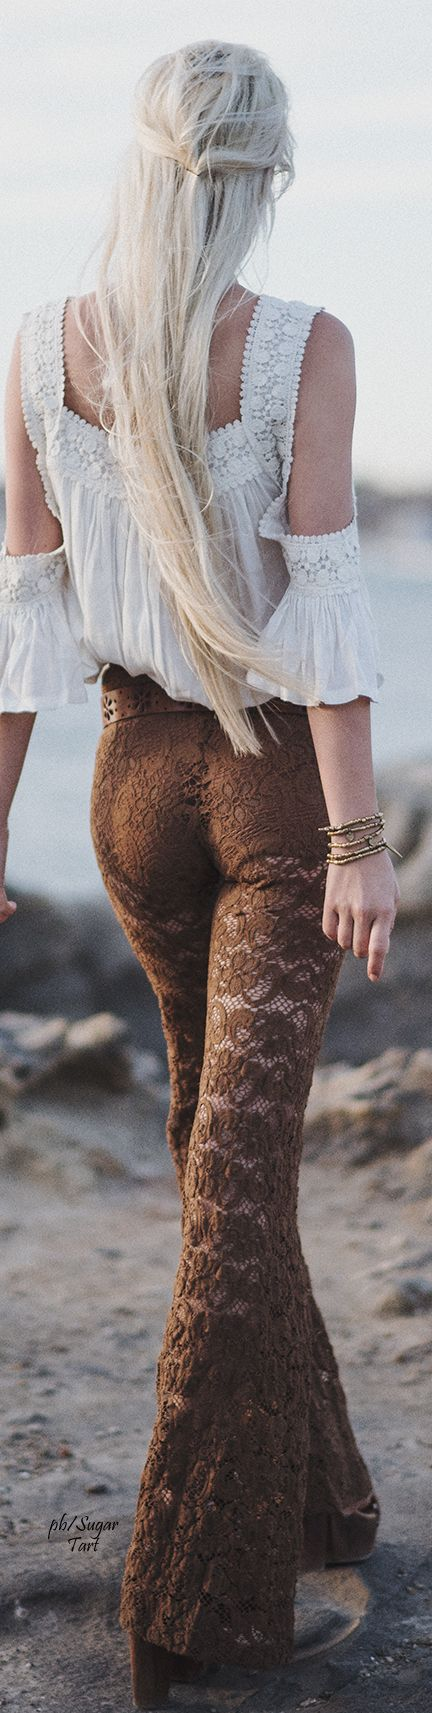 Hippie boho bohemian gypsy style lace trousers. For more followwww.pinterest.com/ninayayand stay positively #inspired